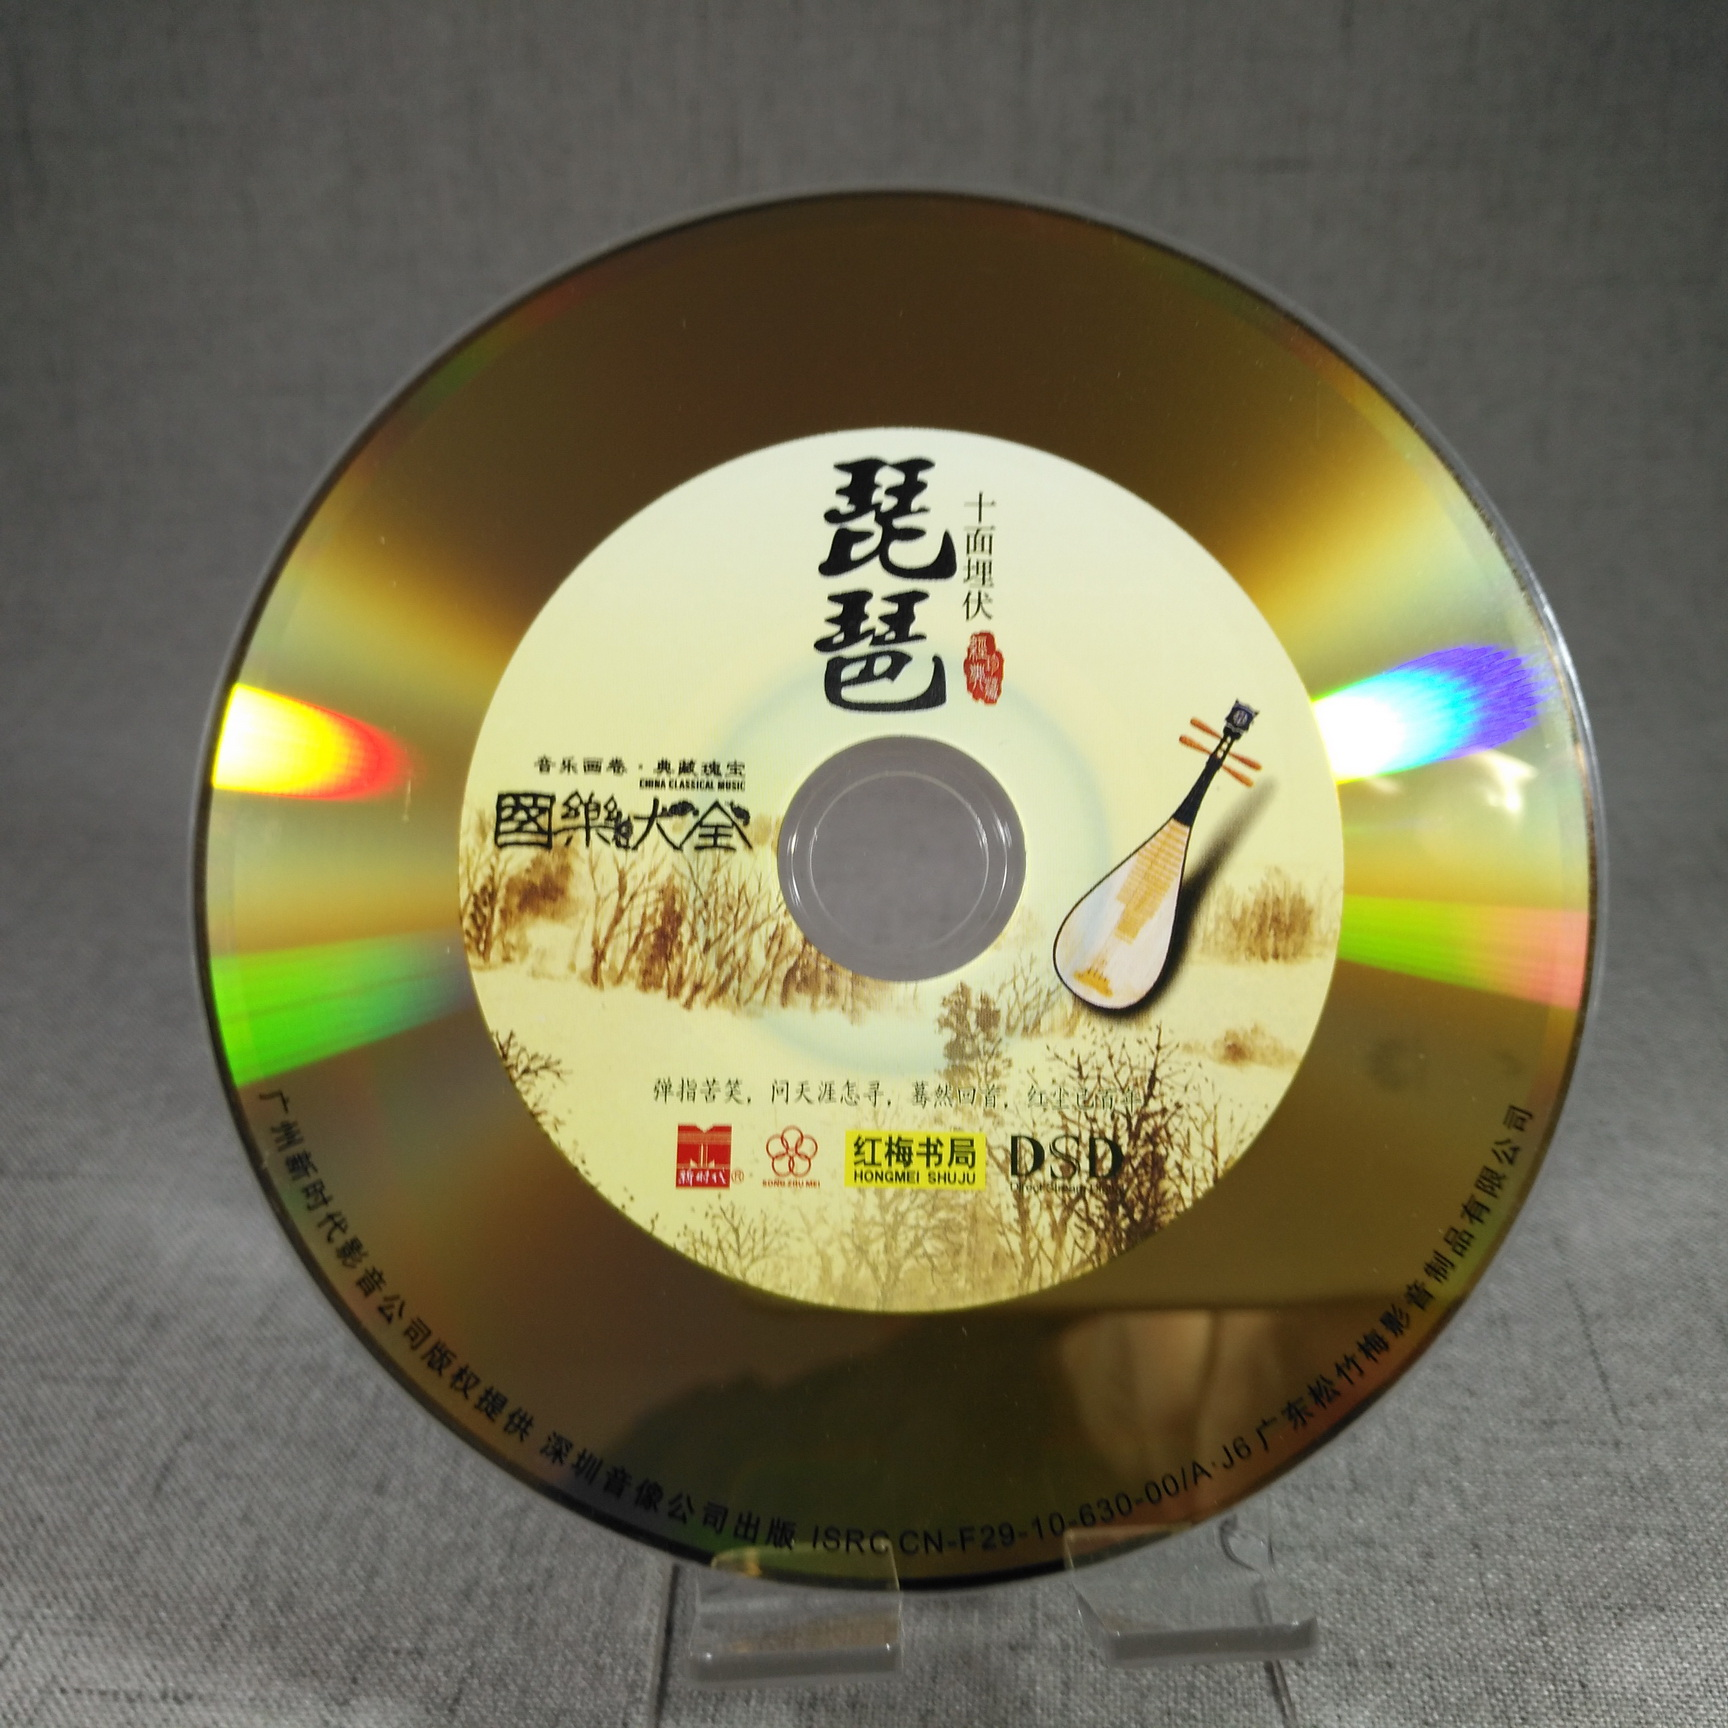 Music CD Replication Duplication Printing All Packaging Solutions